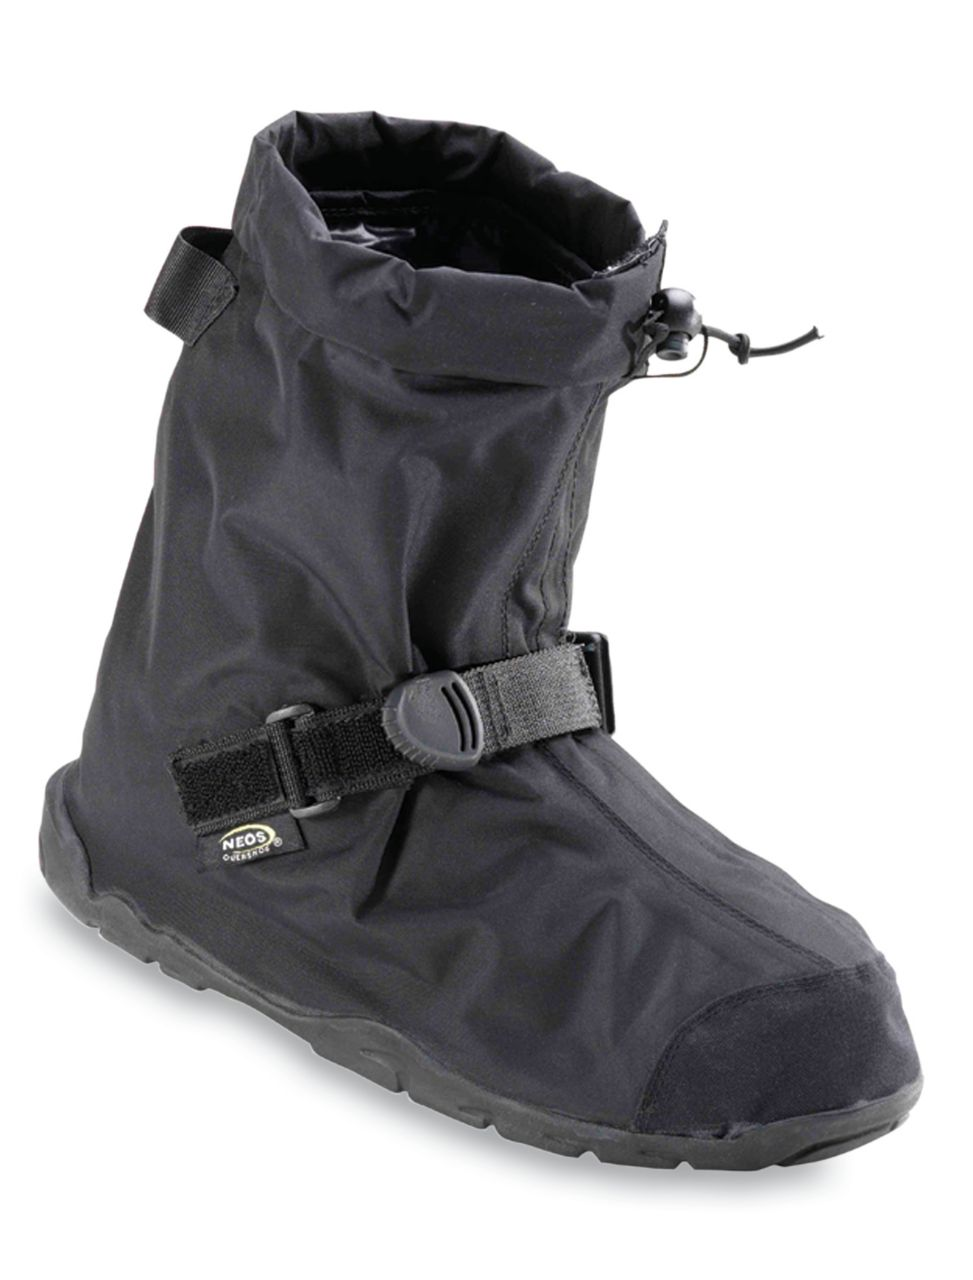 NEOS Villager™ Mid Overshoe